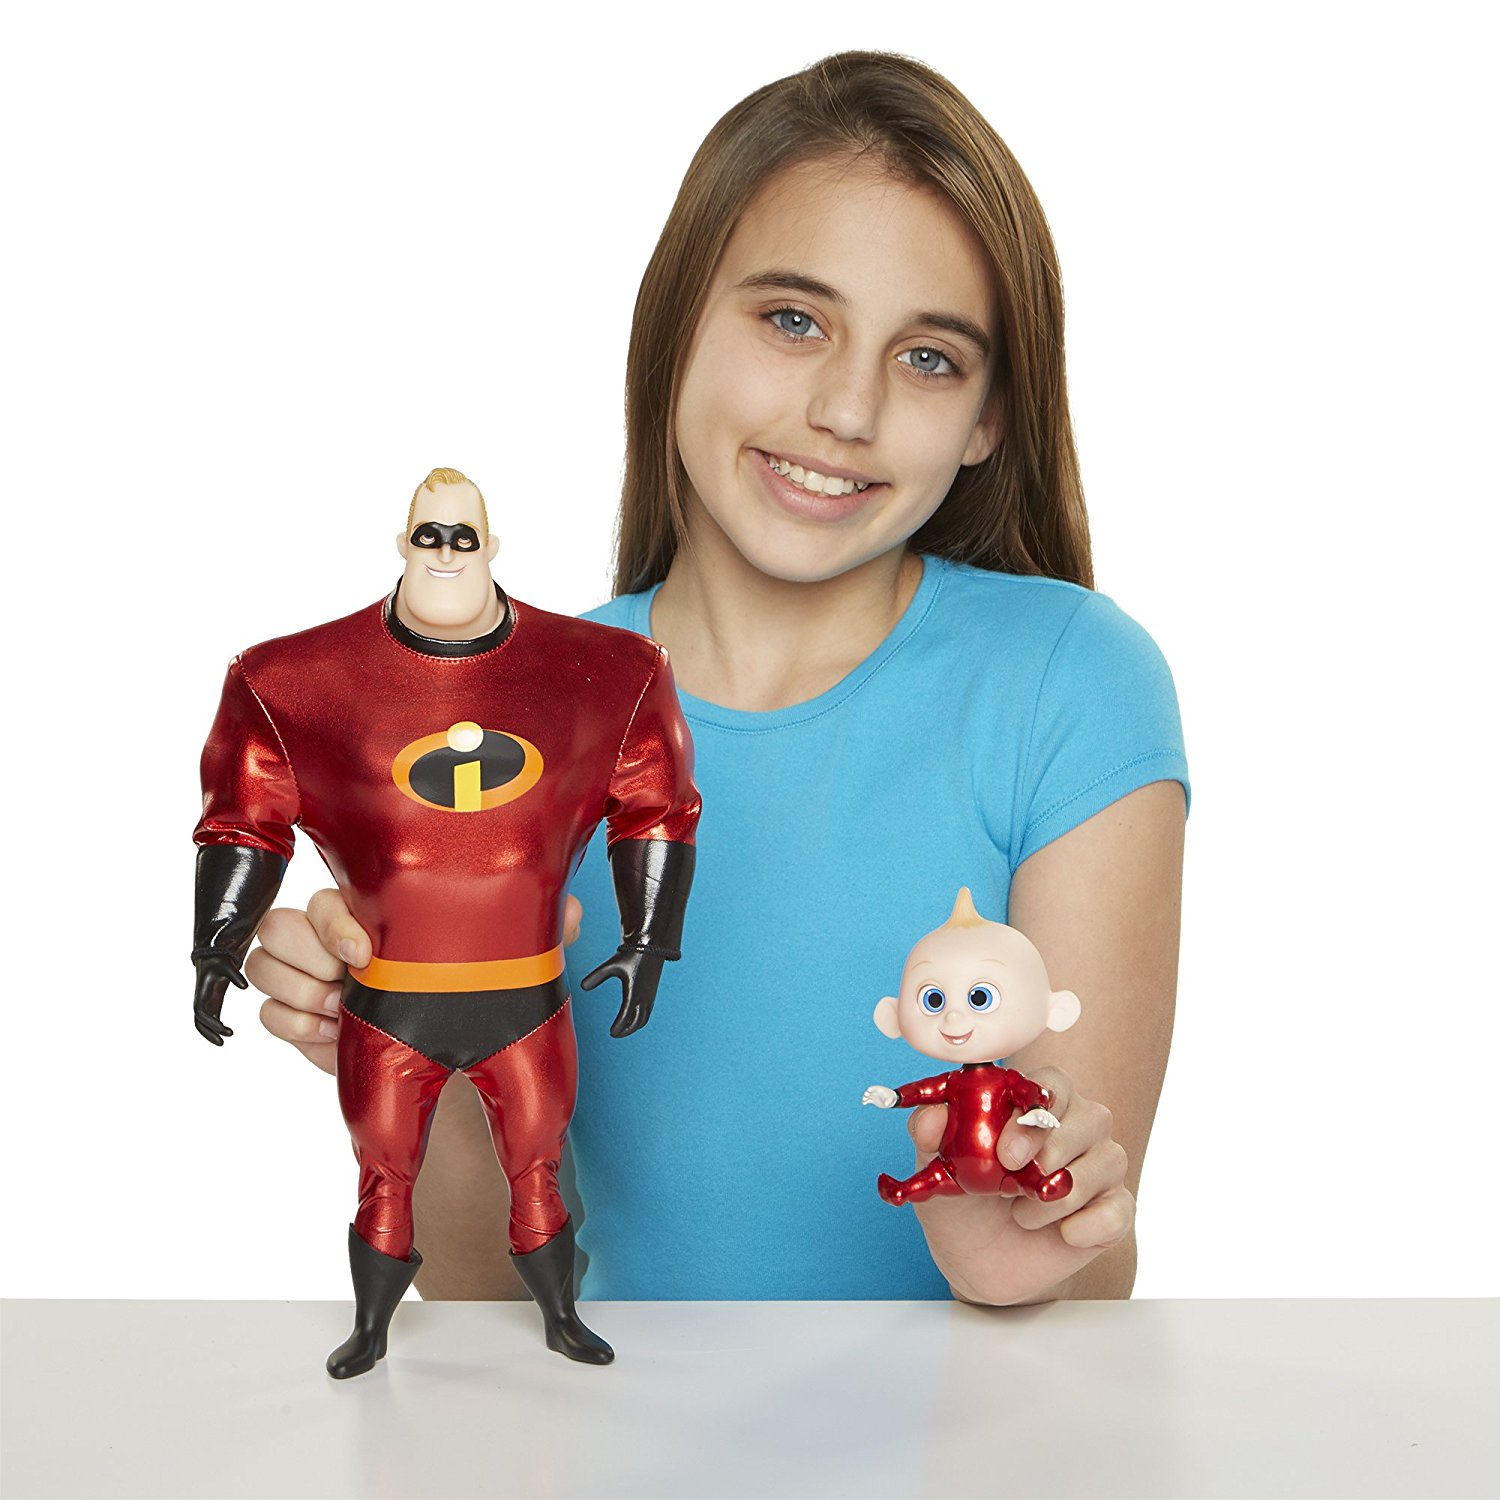 cebcddec8 Get Quotations · The Incredibles 2 Mr.Incredible + Baby Jack Action Figures  Pack, 11